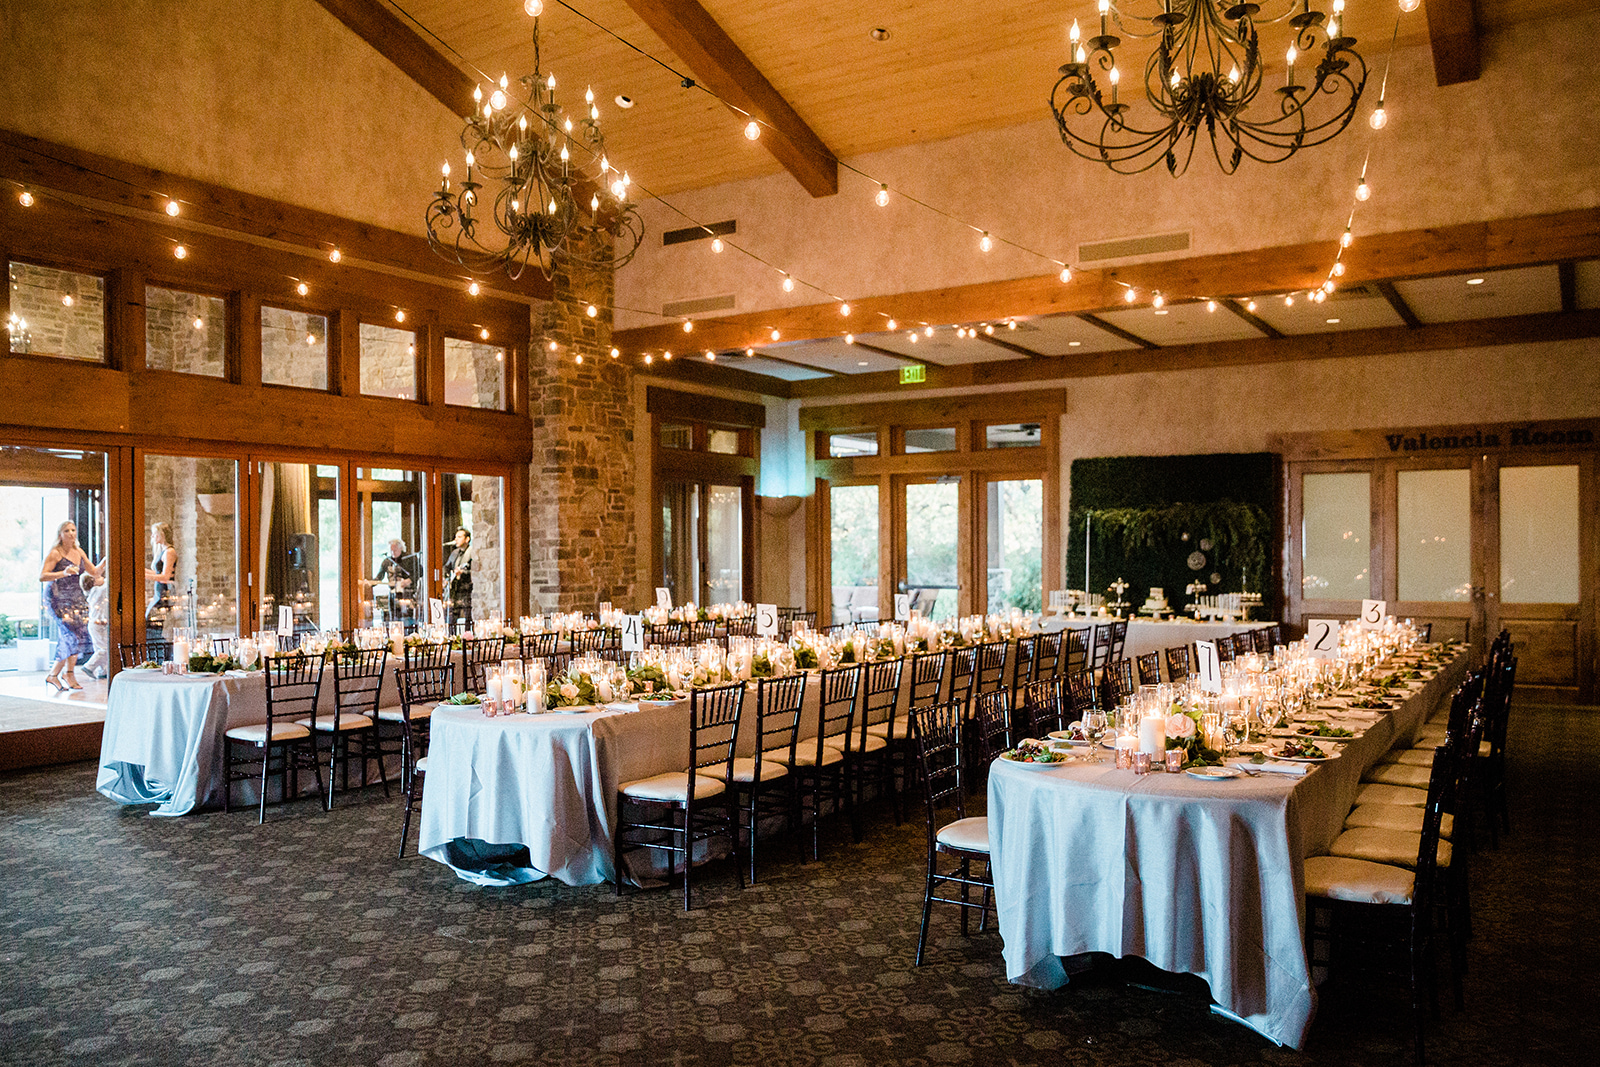 Long table decor with uplights